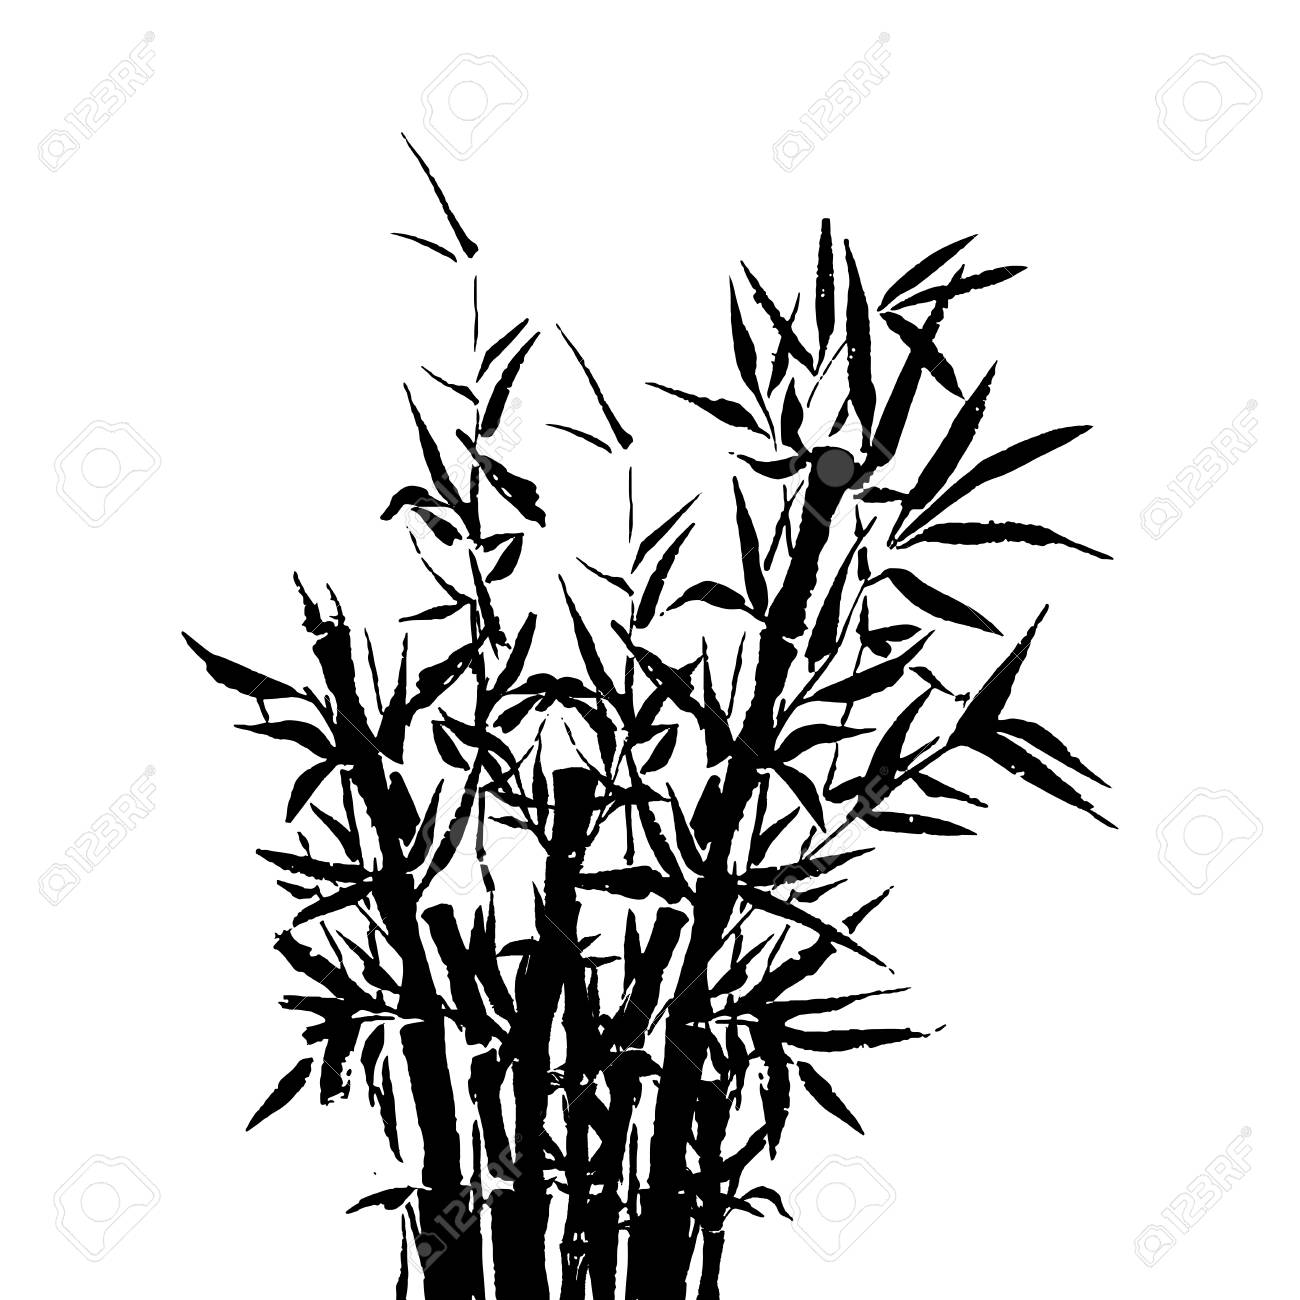 1300x1300 Black Inked Bamboo Tree Japanese Plant Or Tree. Traditional Sumi